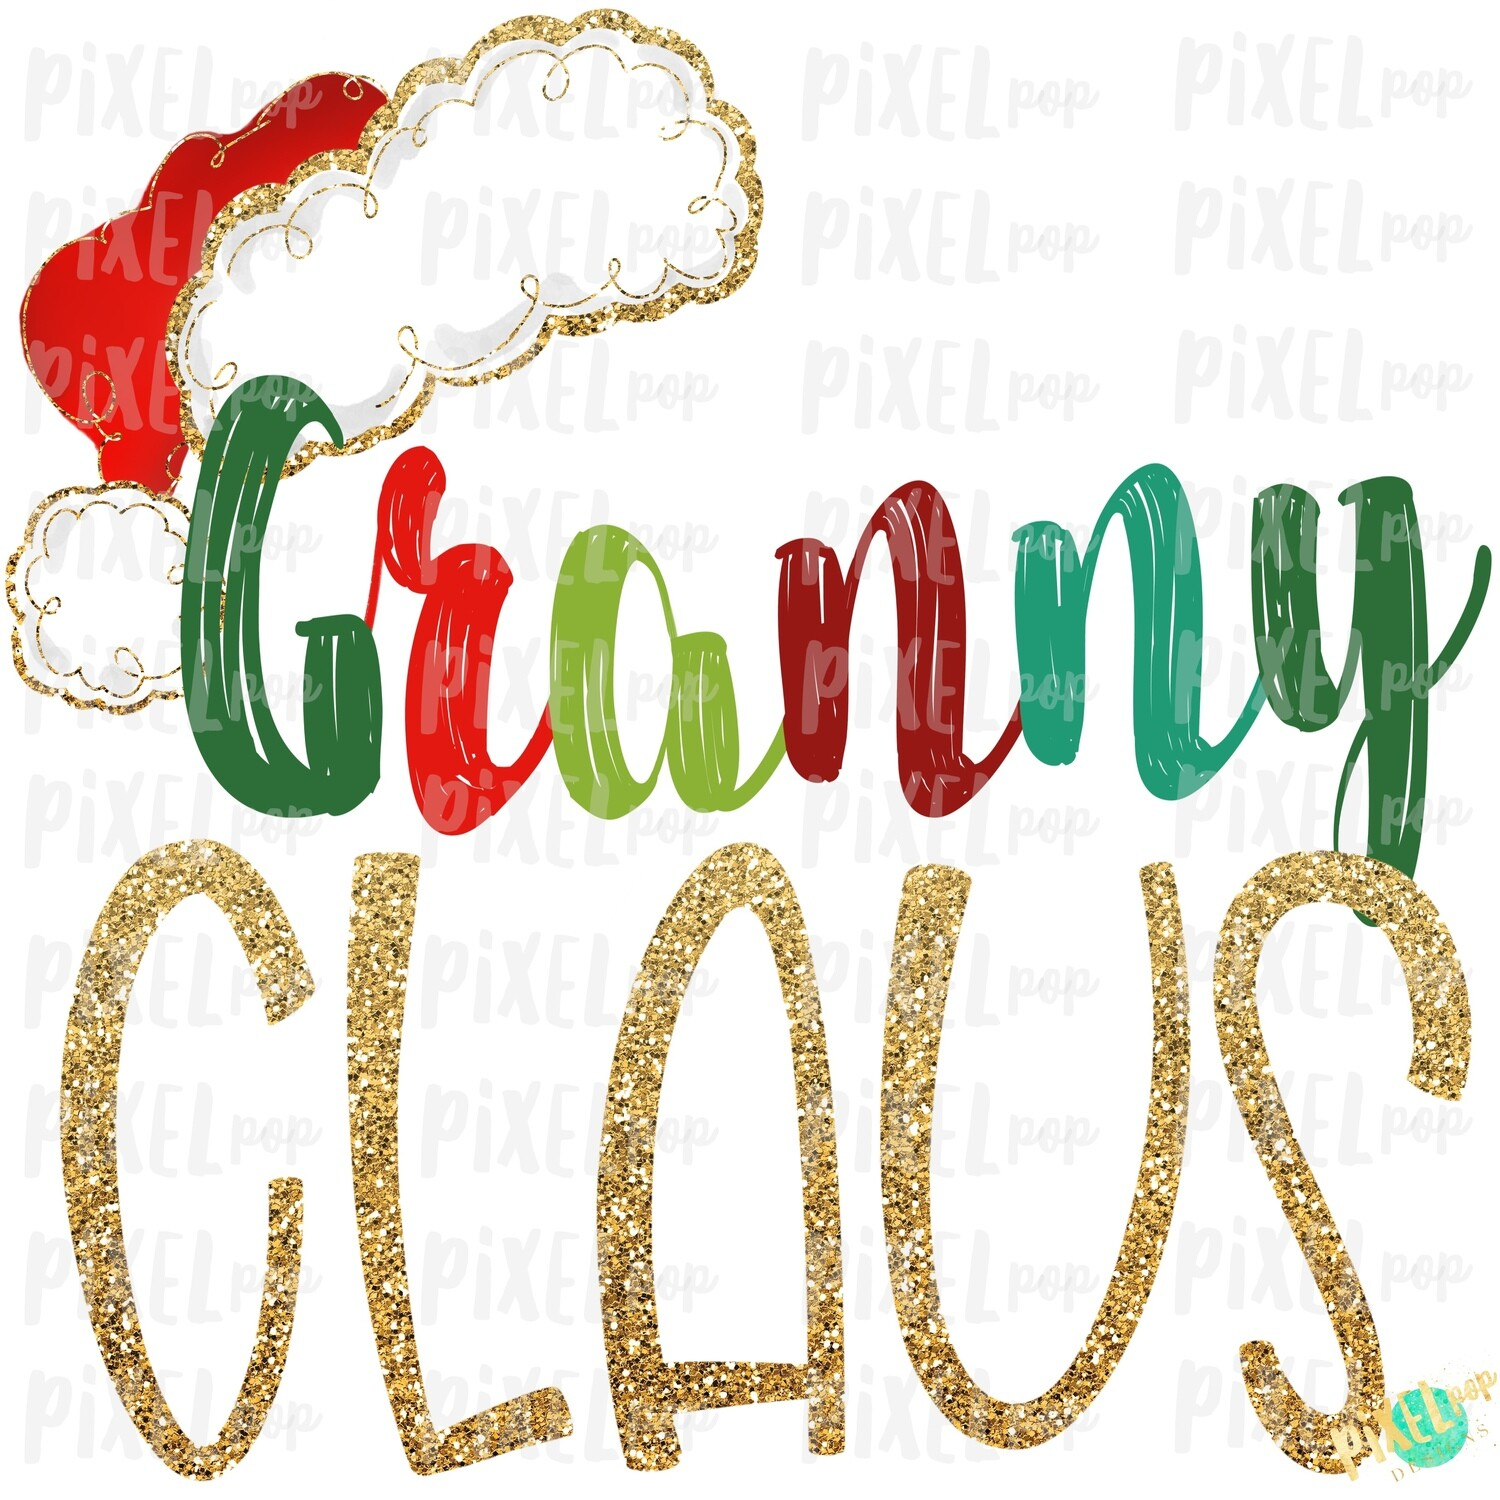 Granny Claus Santa Hat Digital Watercolor Sublimation PNG Art | Drawn Design | Sublimation PNG | Digital Download | Printable Artwork | Art